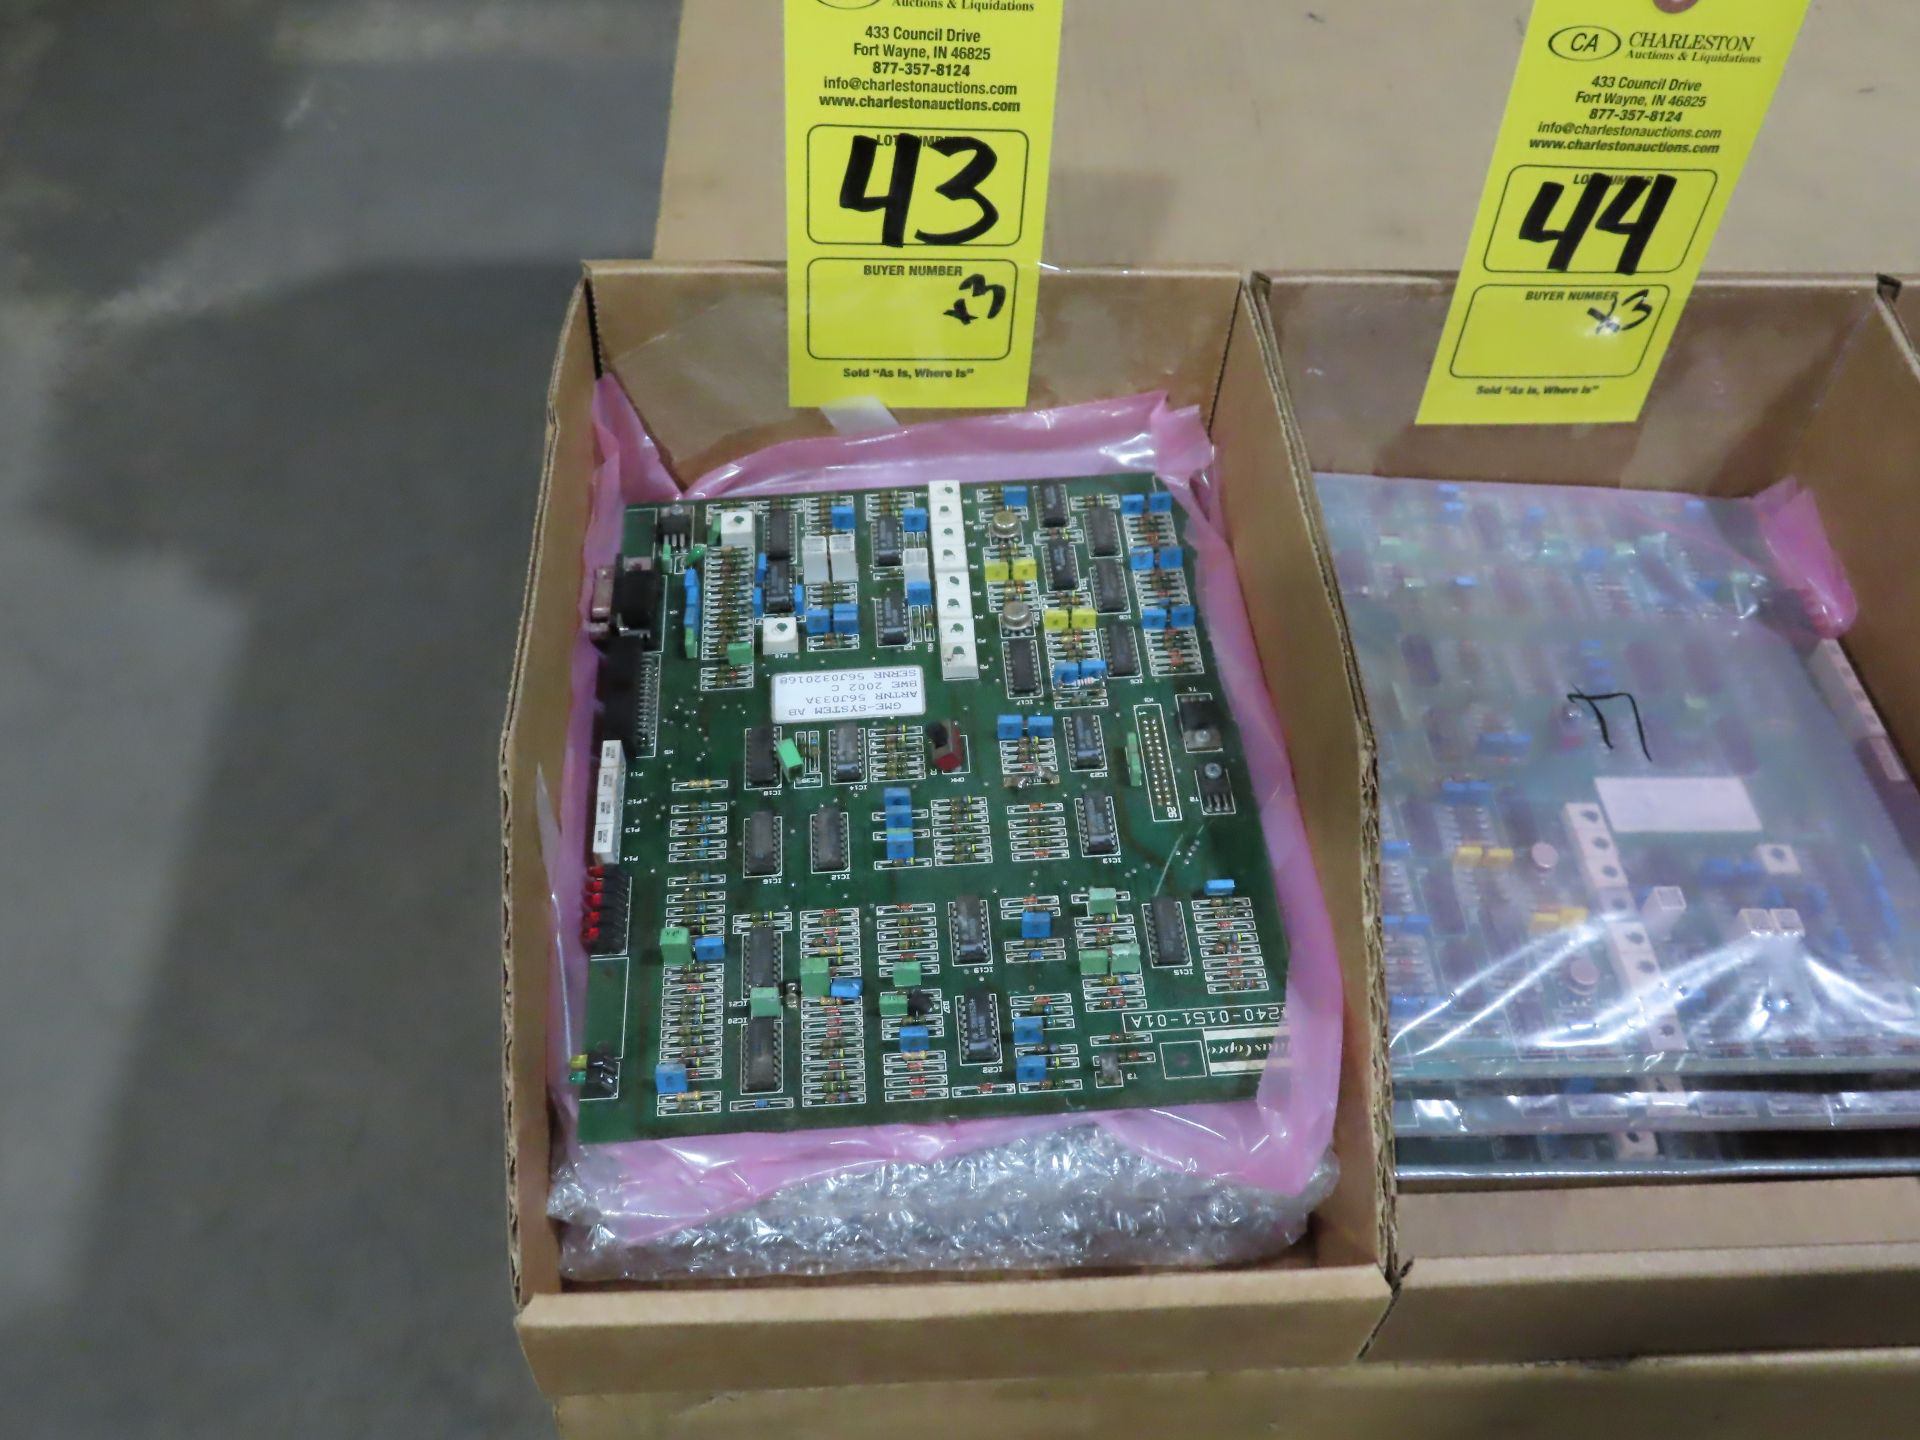 Lot 43 - Qty 3 Altas Copco model 56J033A control boards, as always, with Brolyn LLC auctions, all lots can be